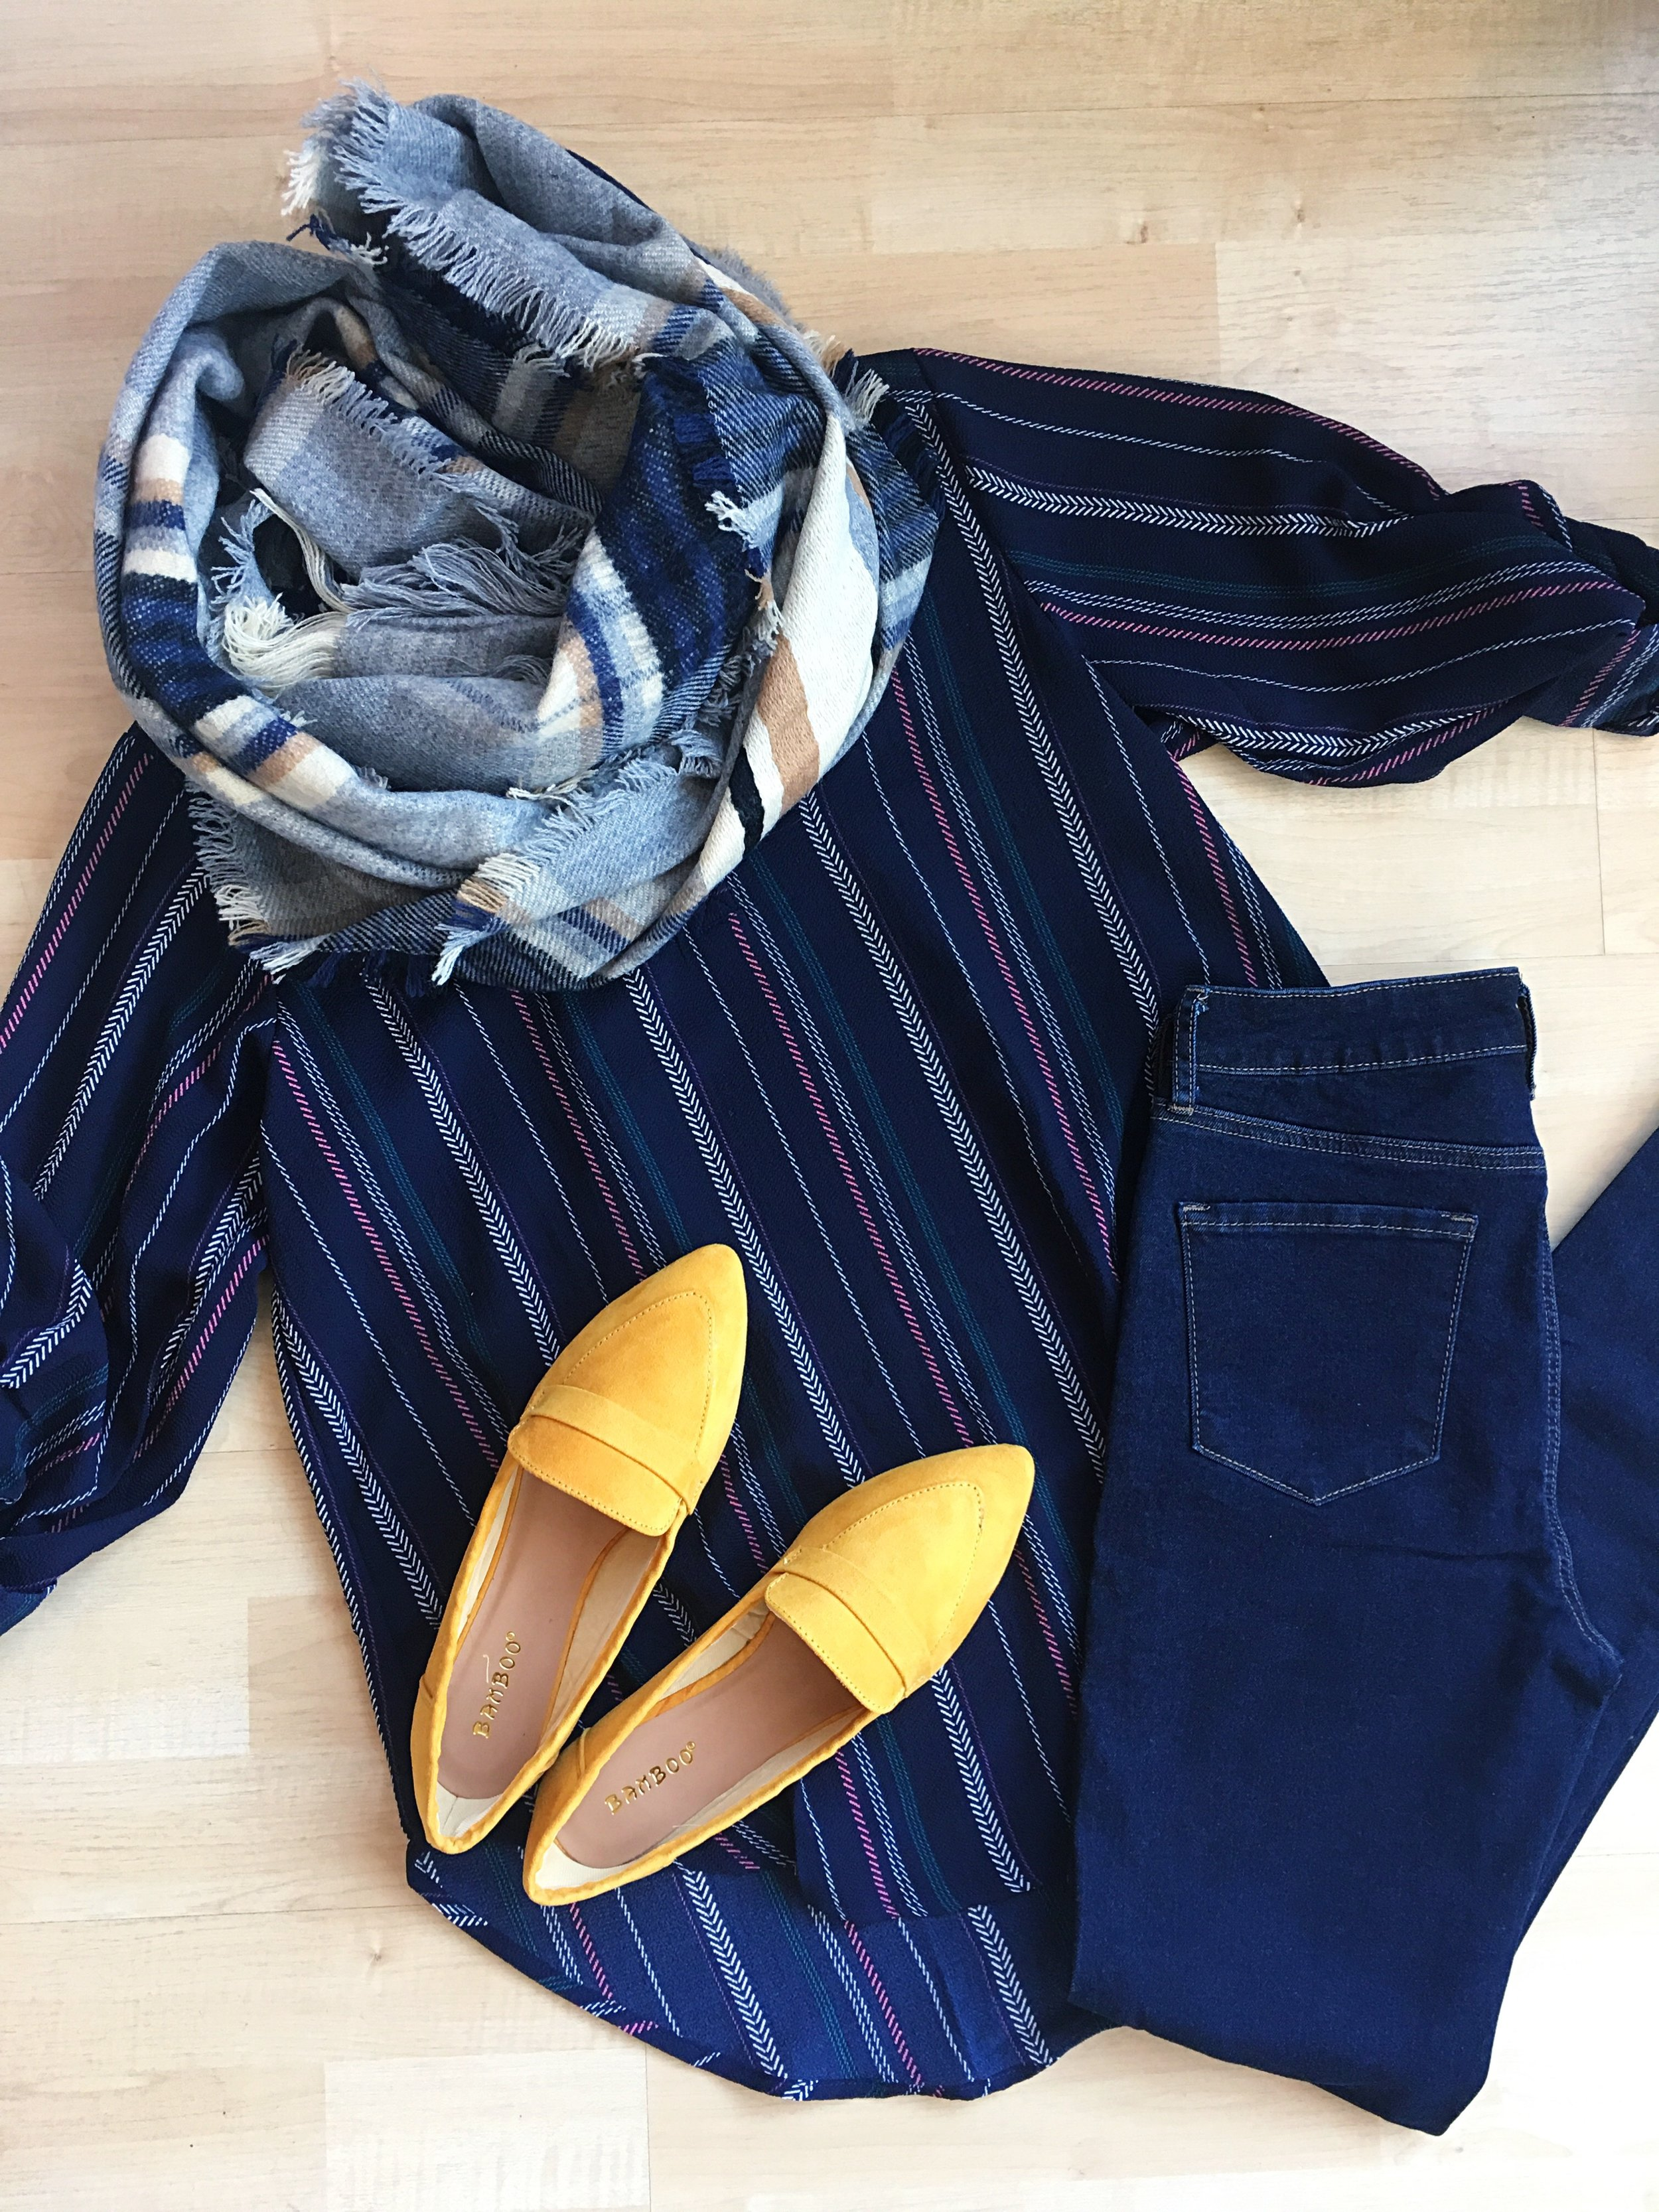 A pop of color in a sea of blue and navy - come check out these mustard flats!